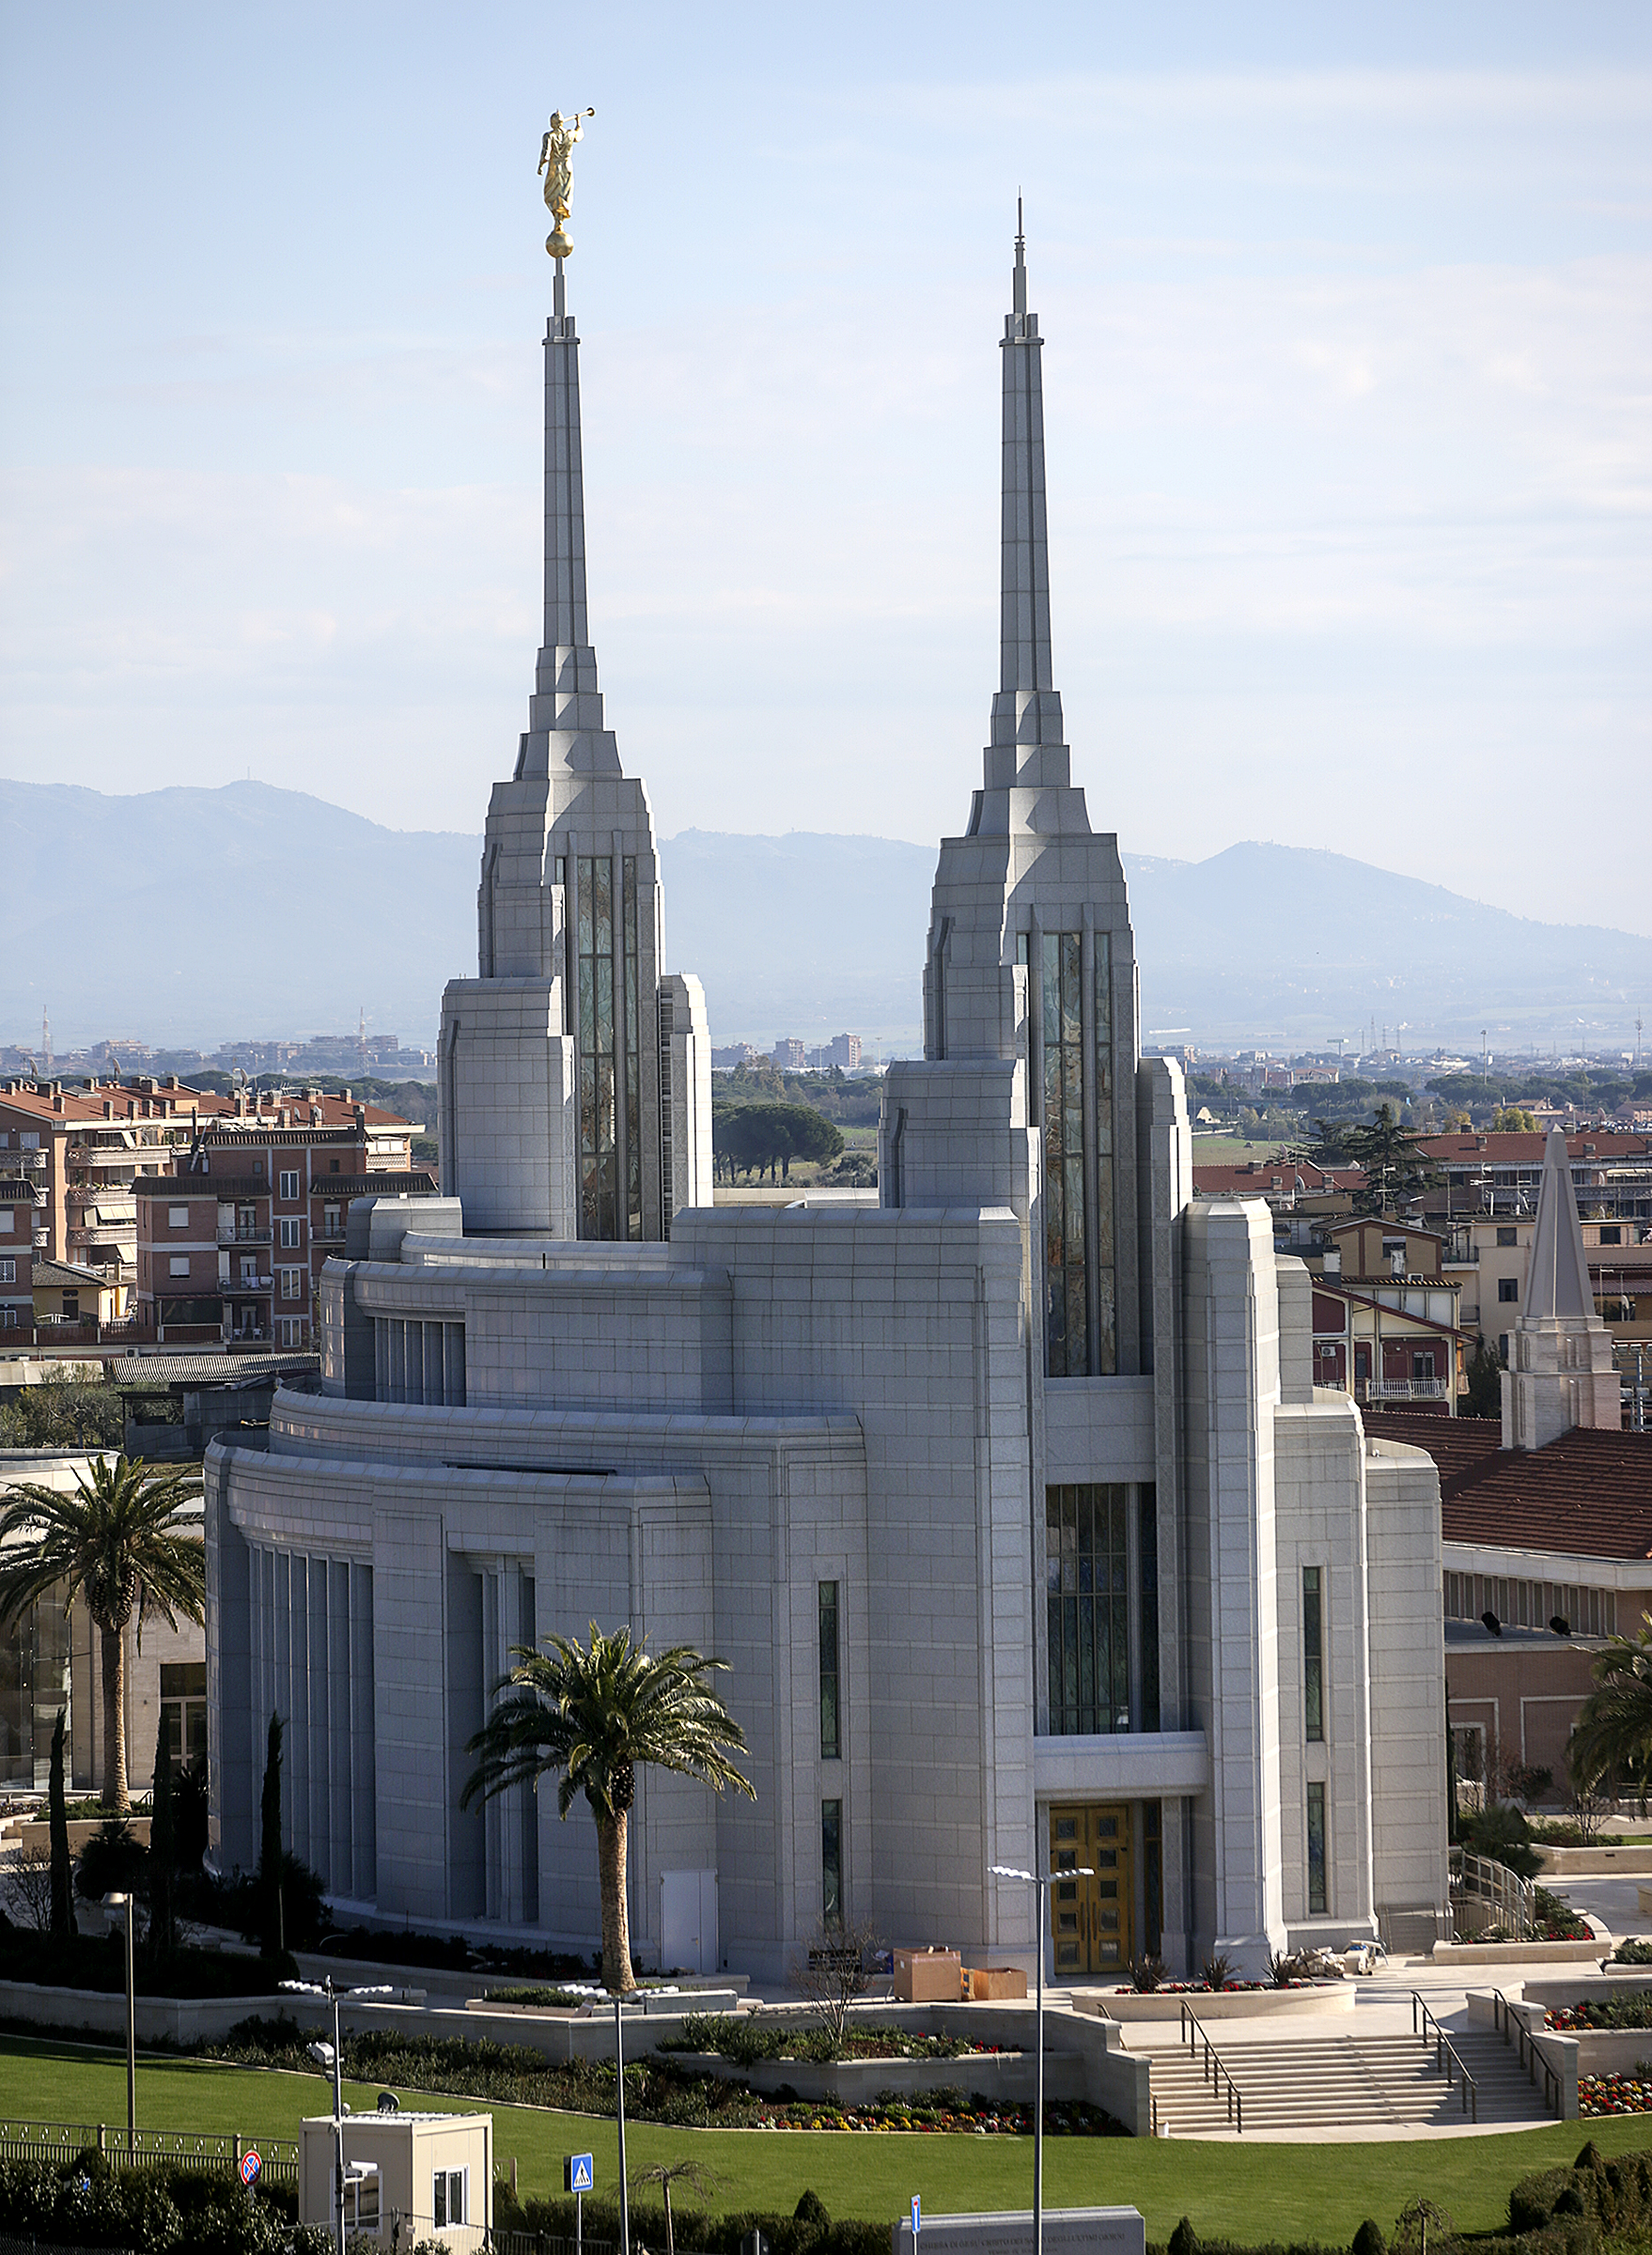 The Rome Italy Temple on Sunday, Nov. 18, 2018.